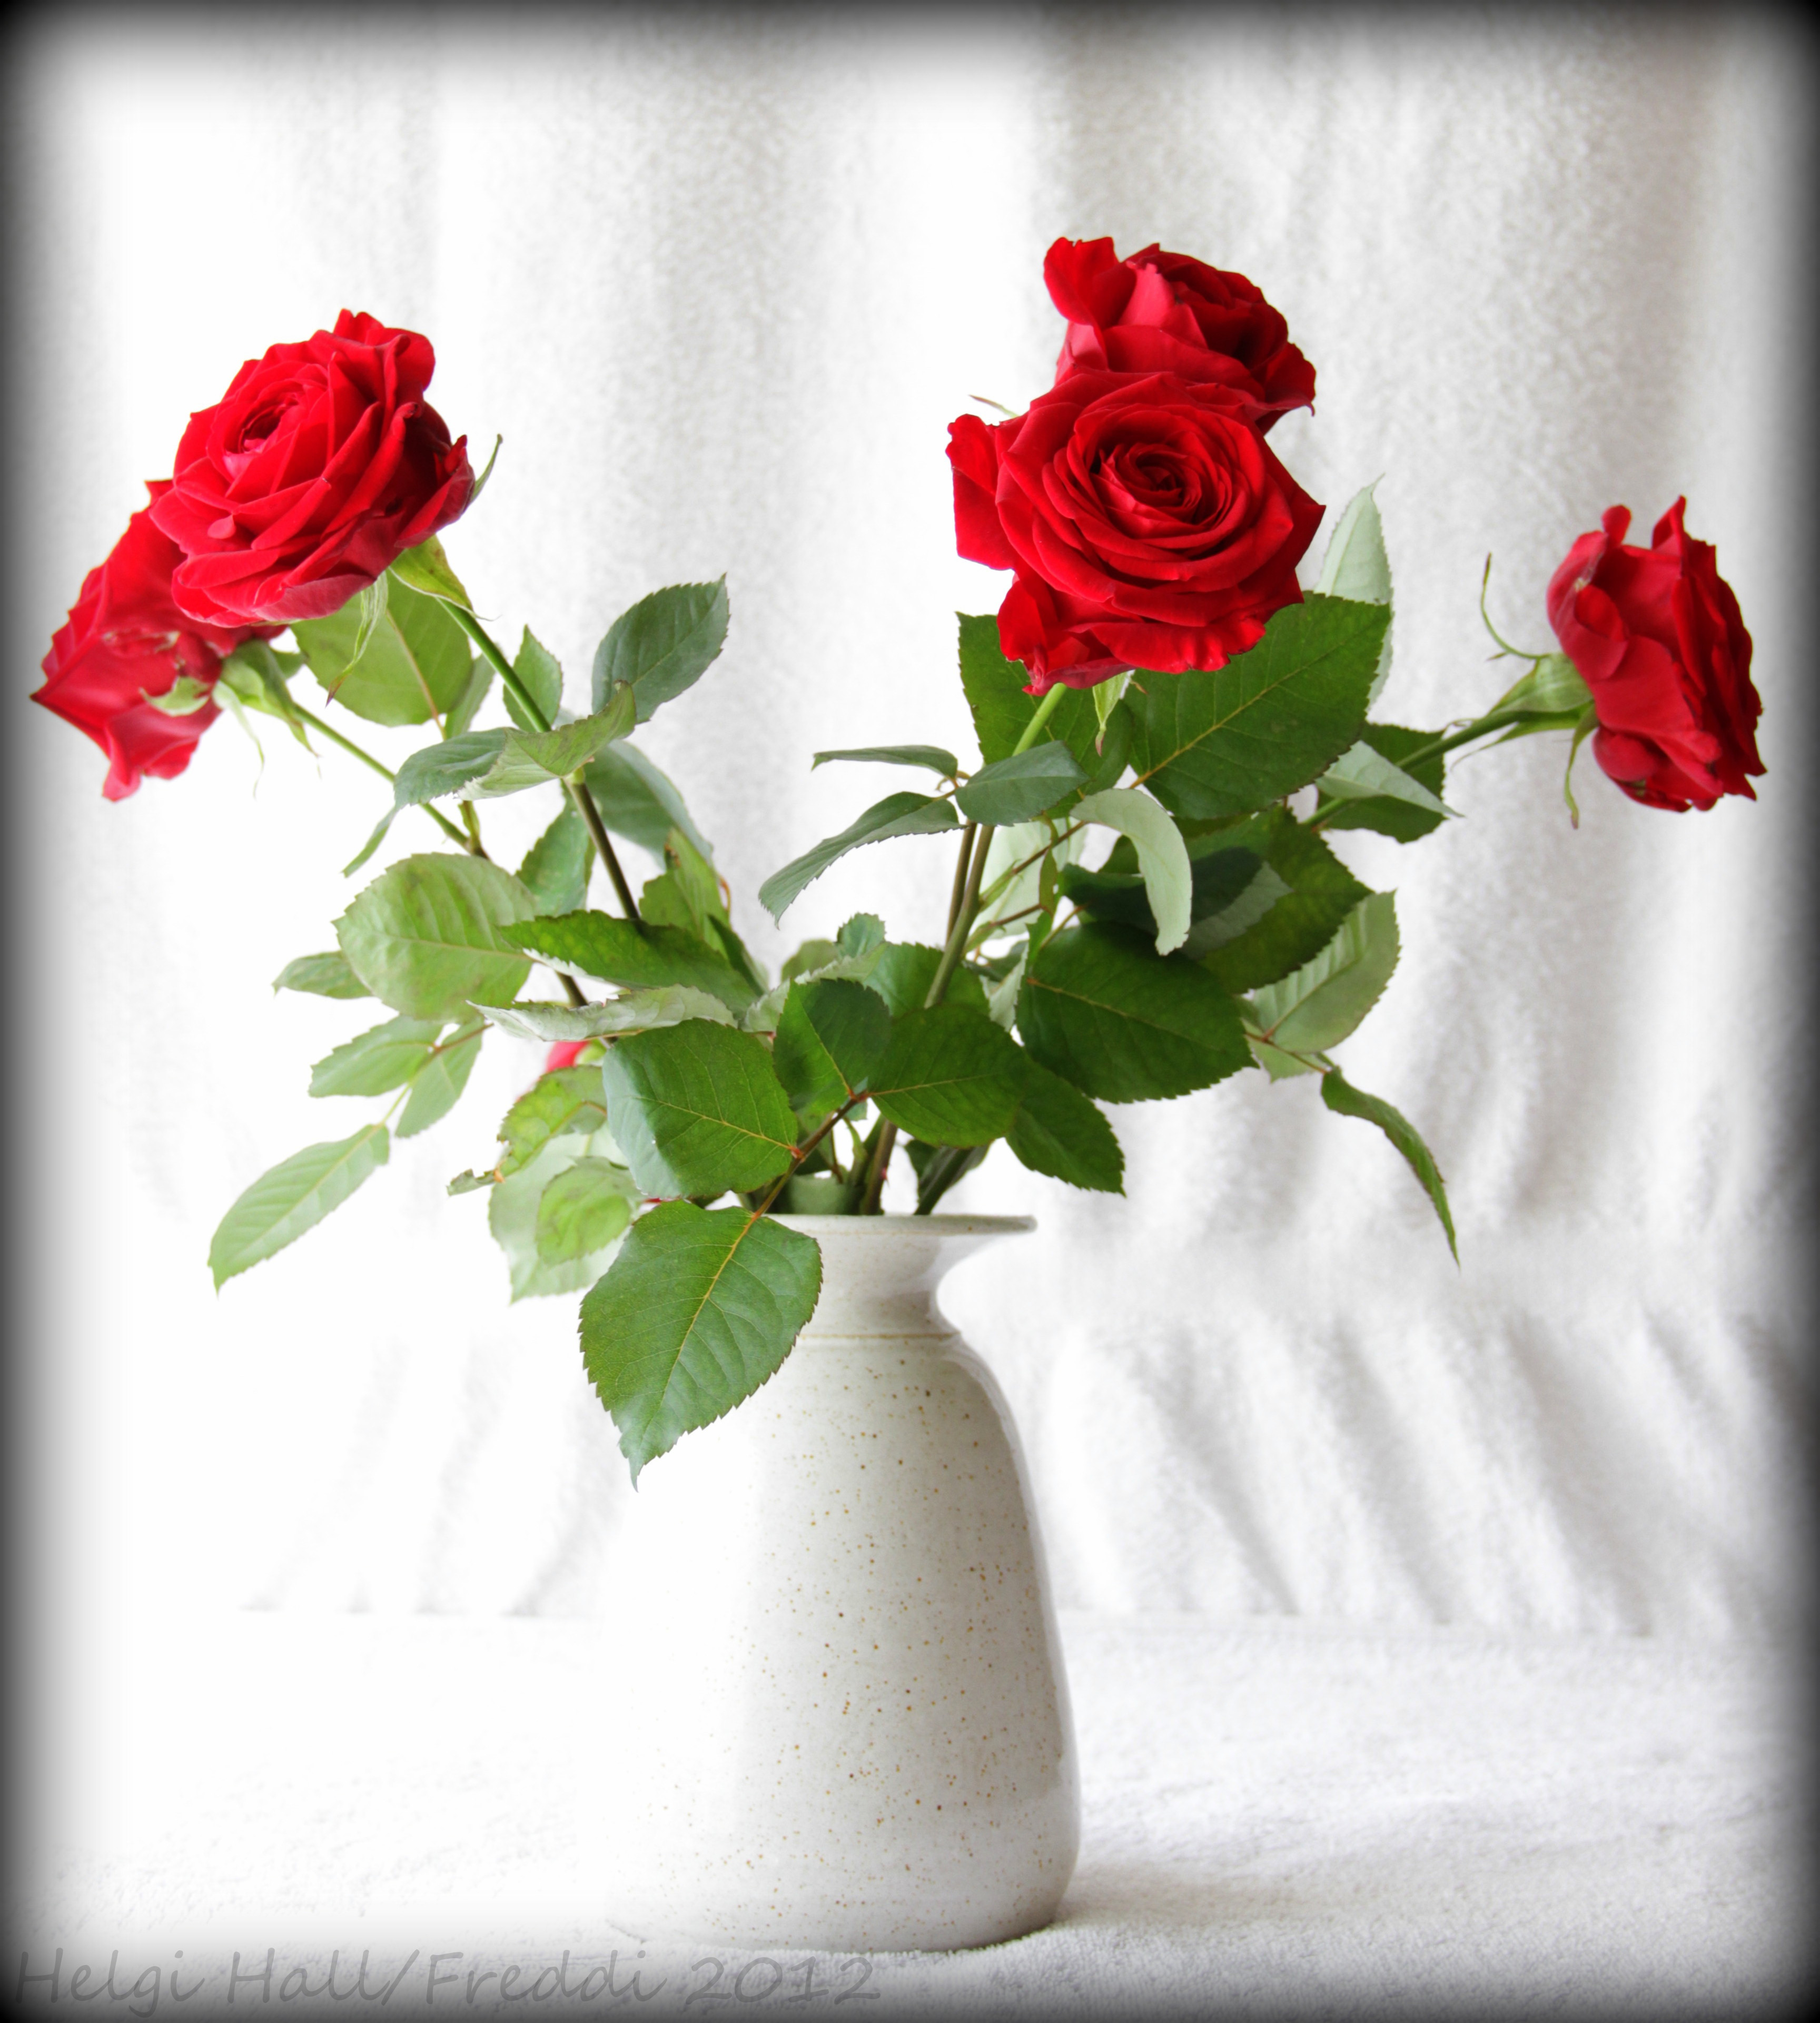 file roses are red violets are blue 7070594147 jpg wikimedia commons